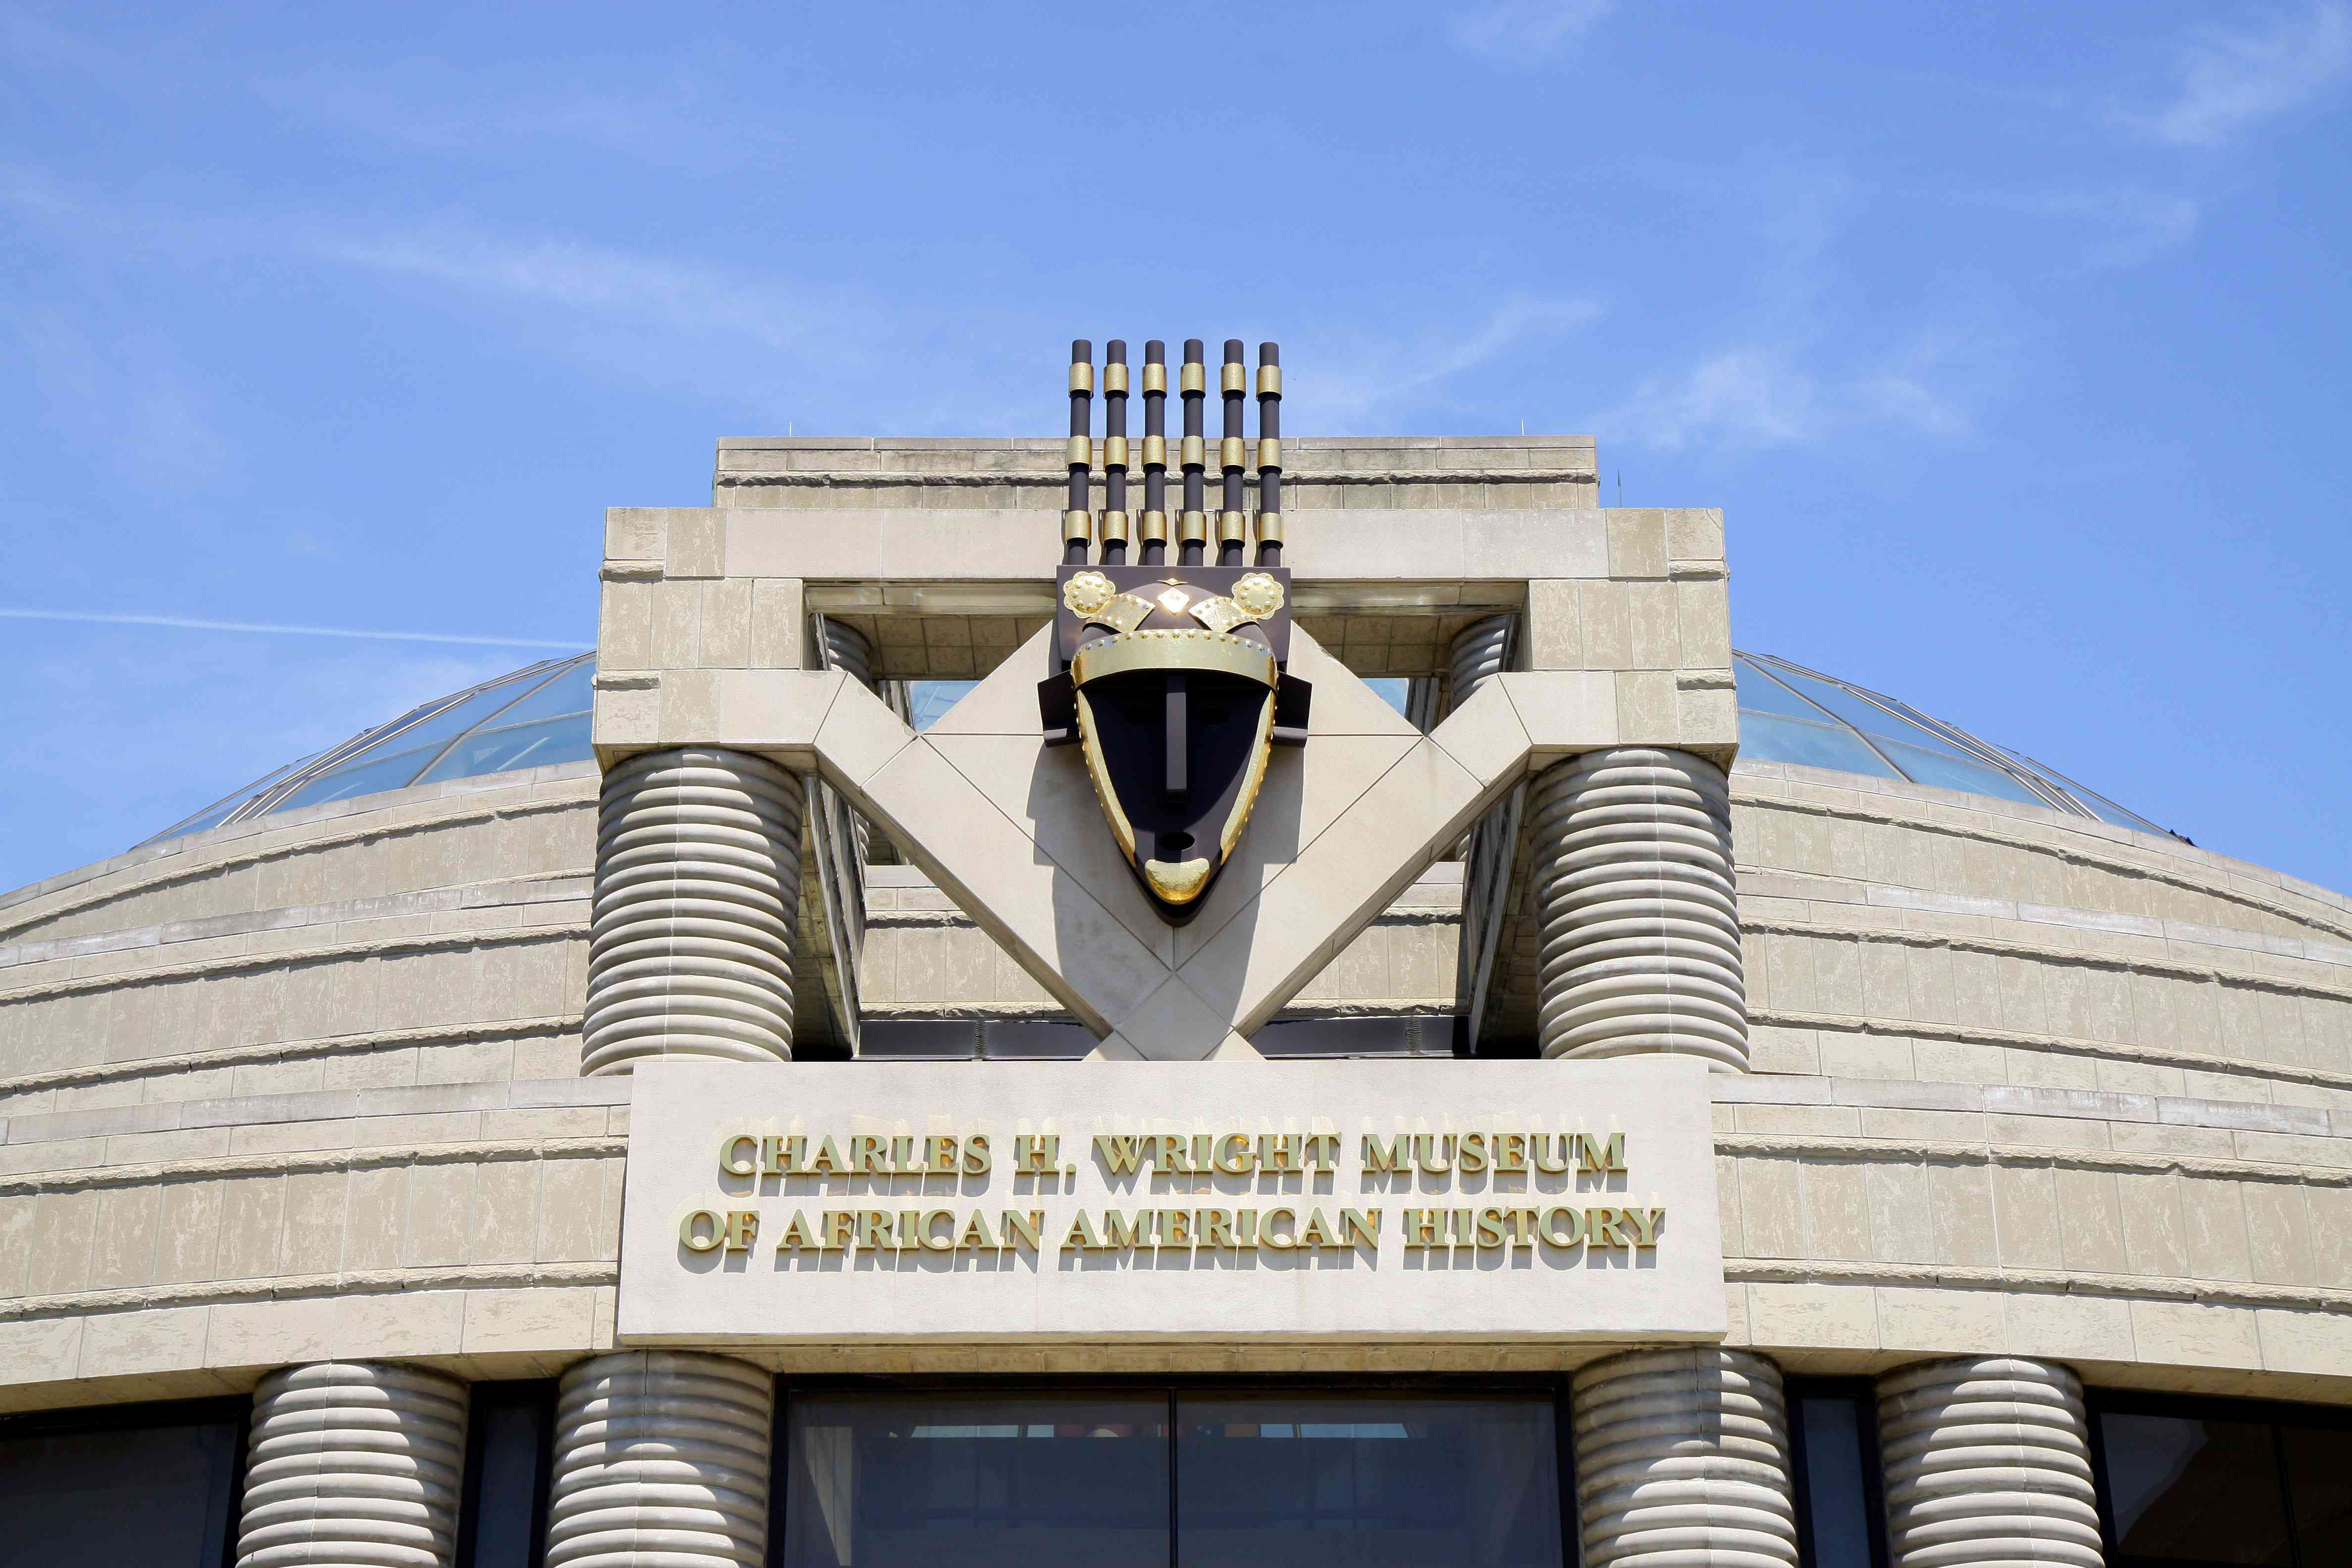 entrance to Charles H. Wright Museum of African-American History